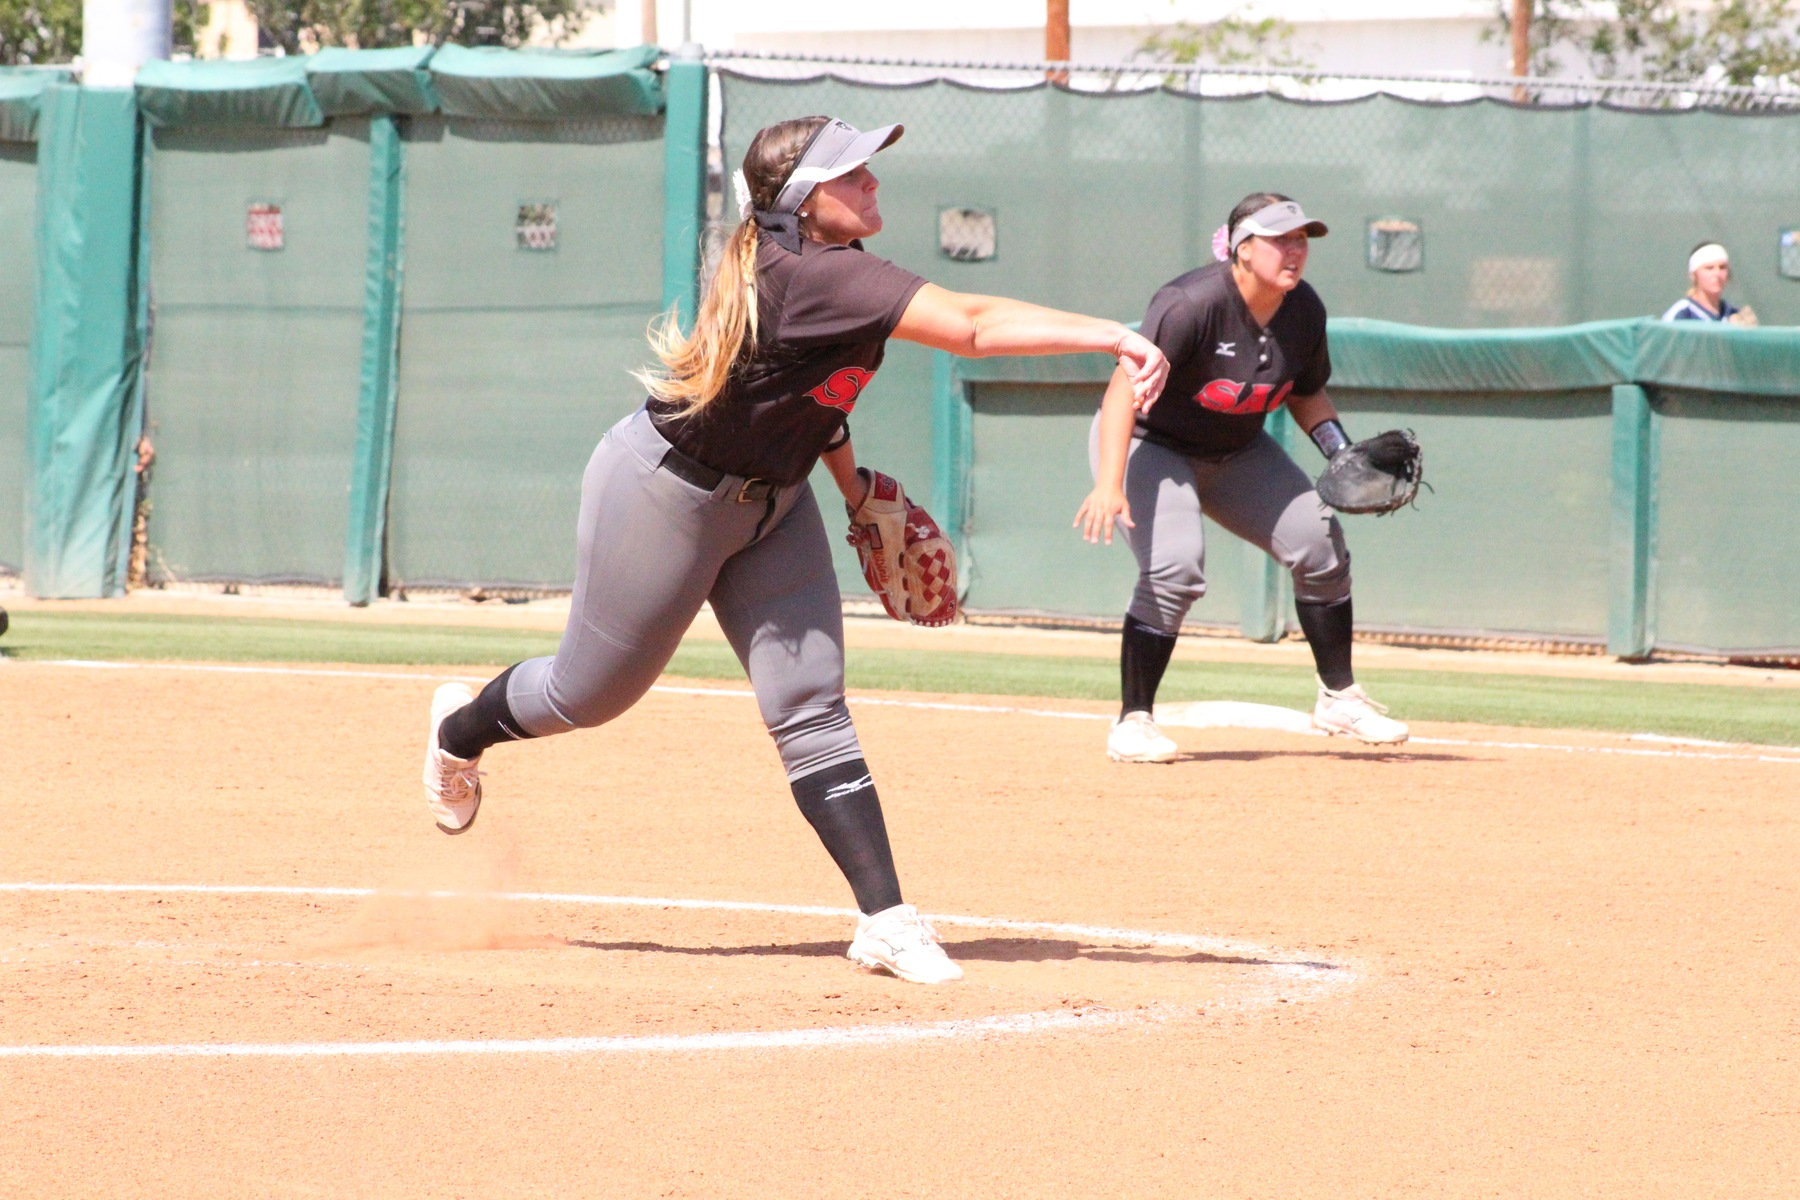 SAC Falls 2-1 in Extra Innings to Fullerton